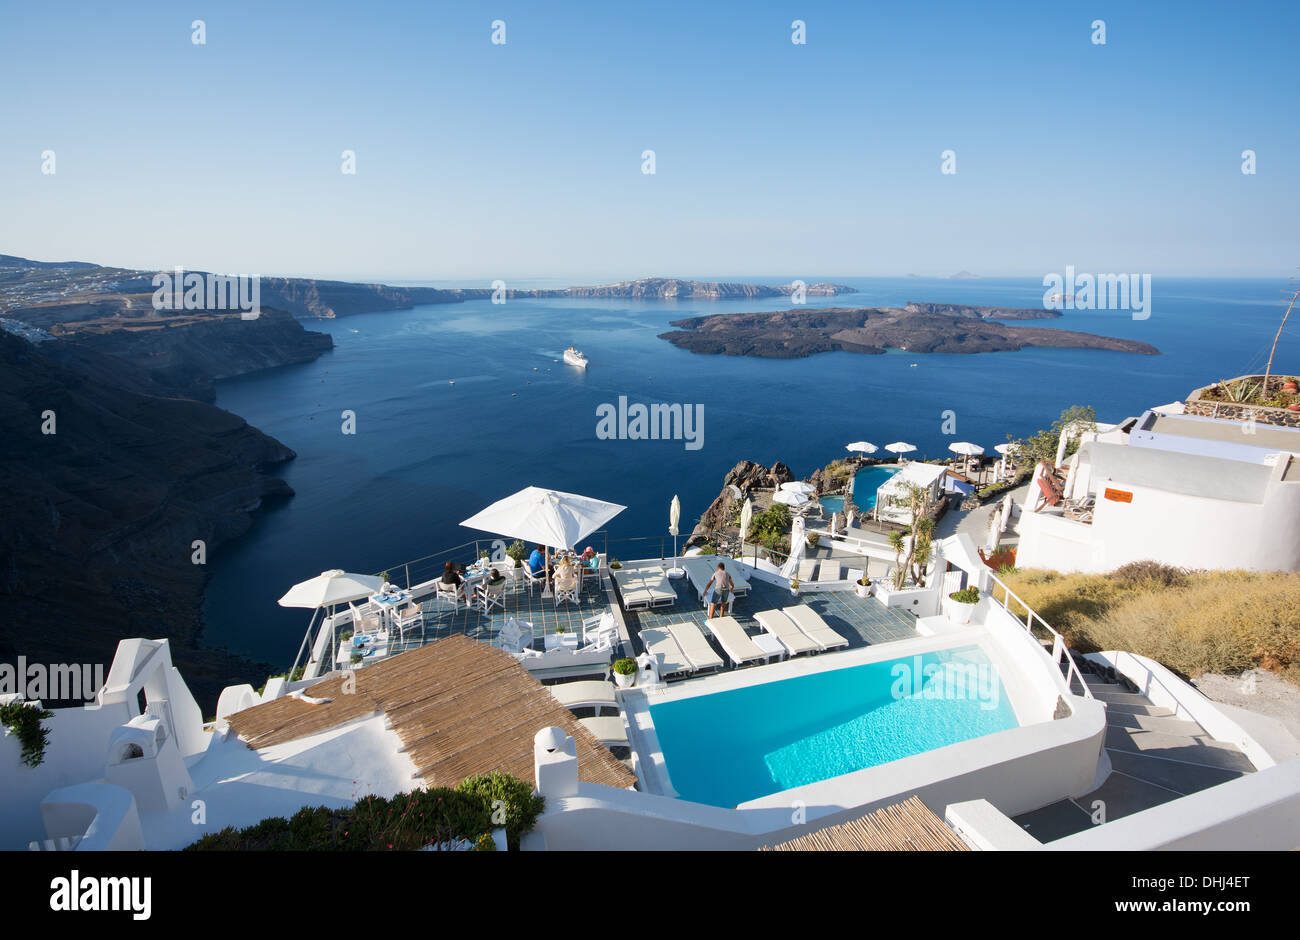 SANTORINI (THIRA), CYCLADES, GREECE. A view from the village of Imerovighli. 2013. - Stock Image